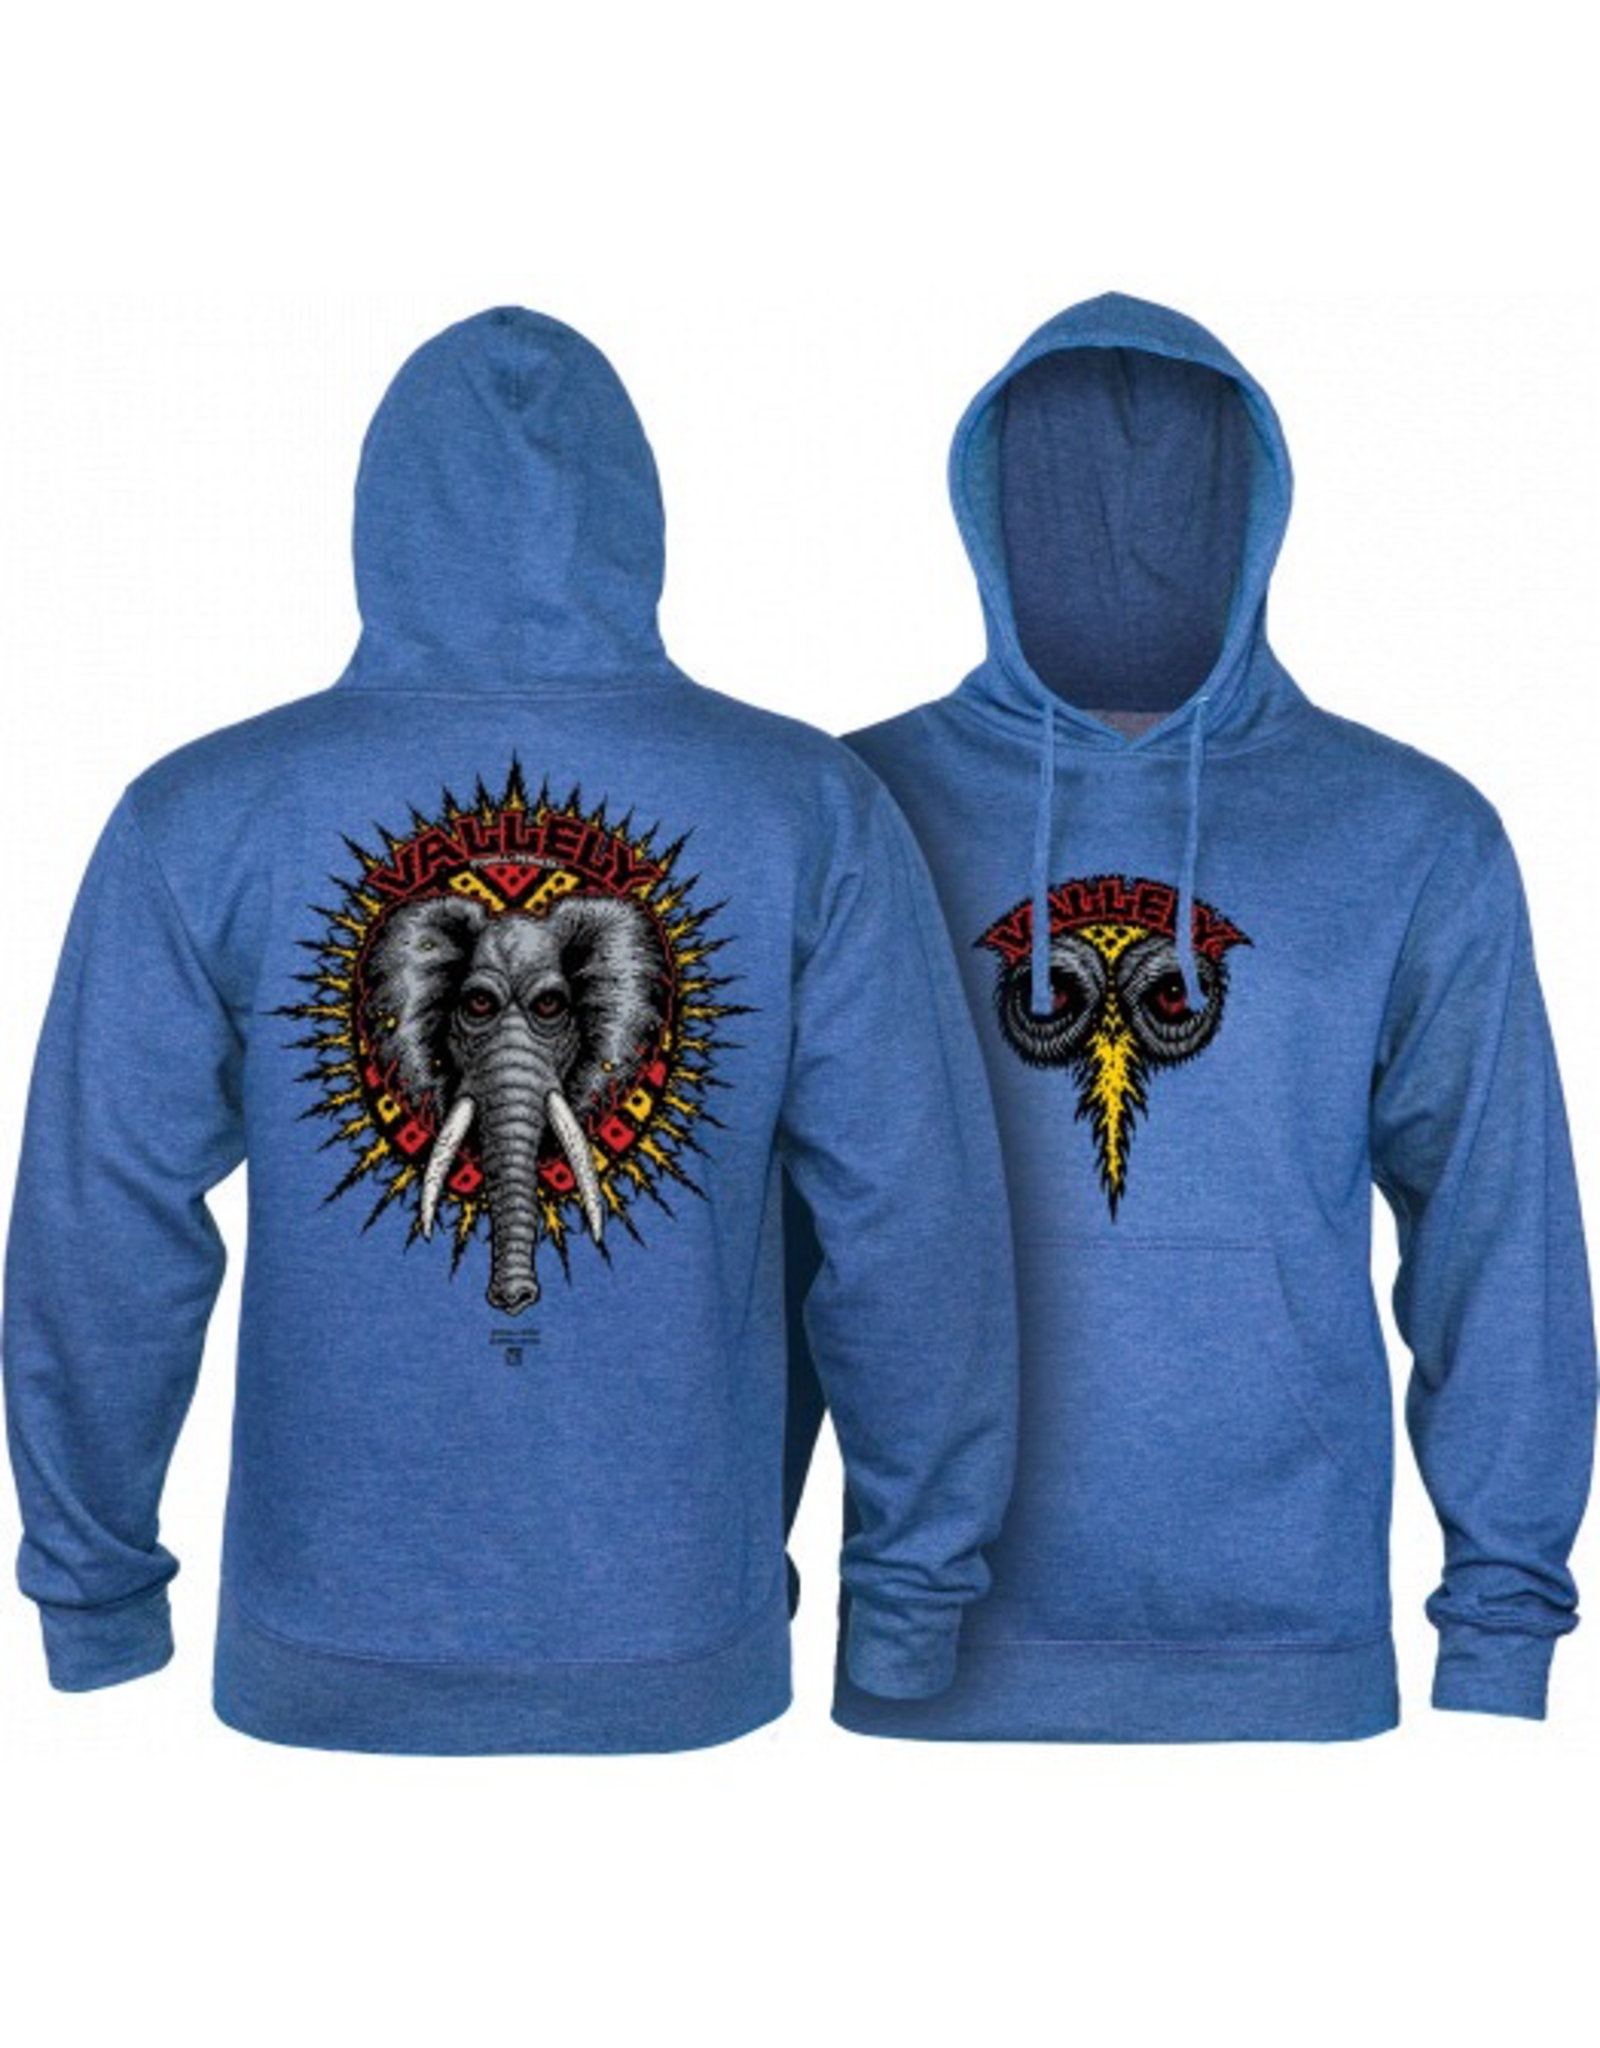 POWELL Powell Peralta Mike Vallely Elephant Hooded Sweat Shirt Mid Weight Royal Heather